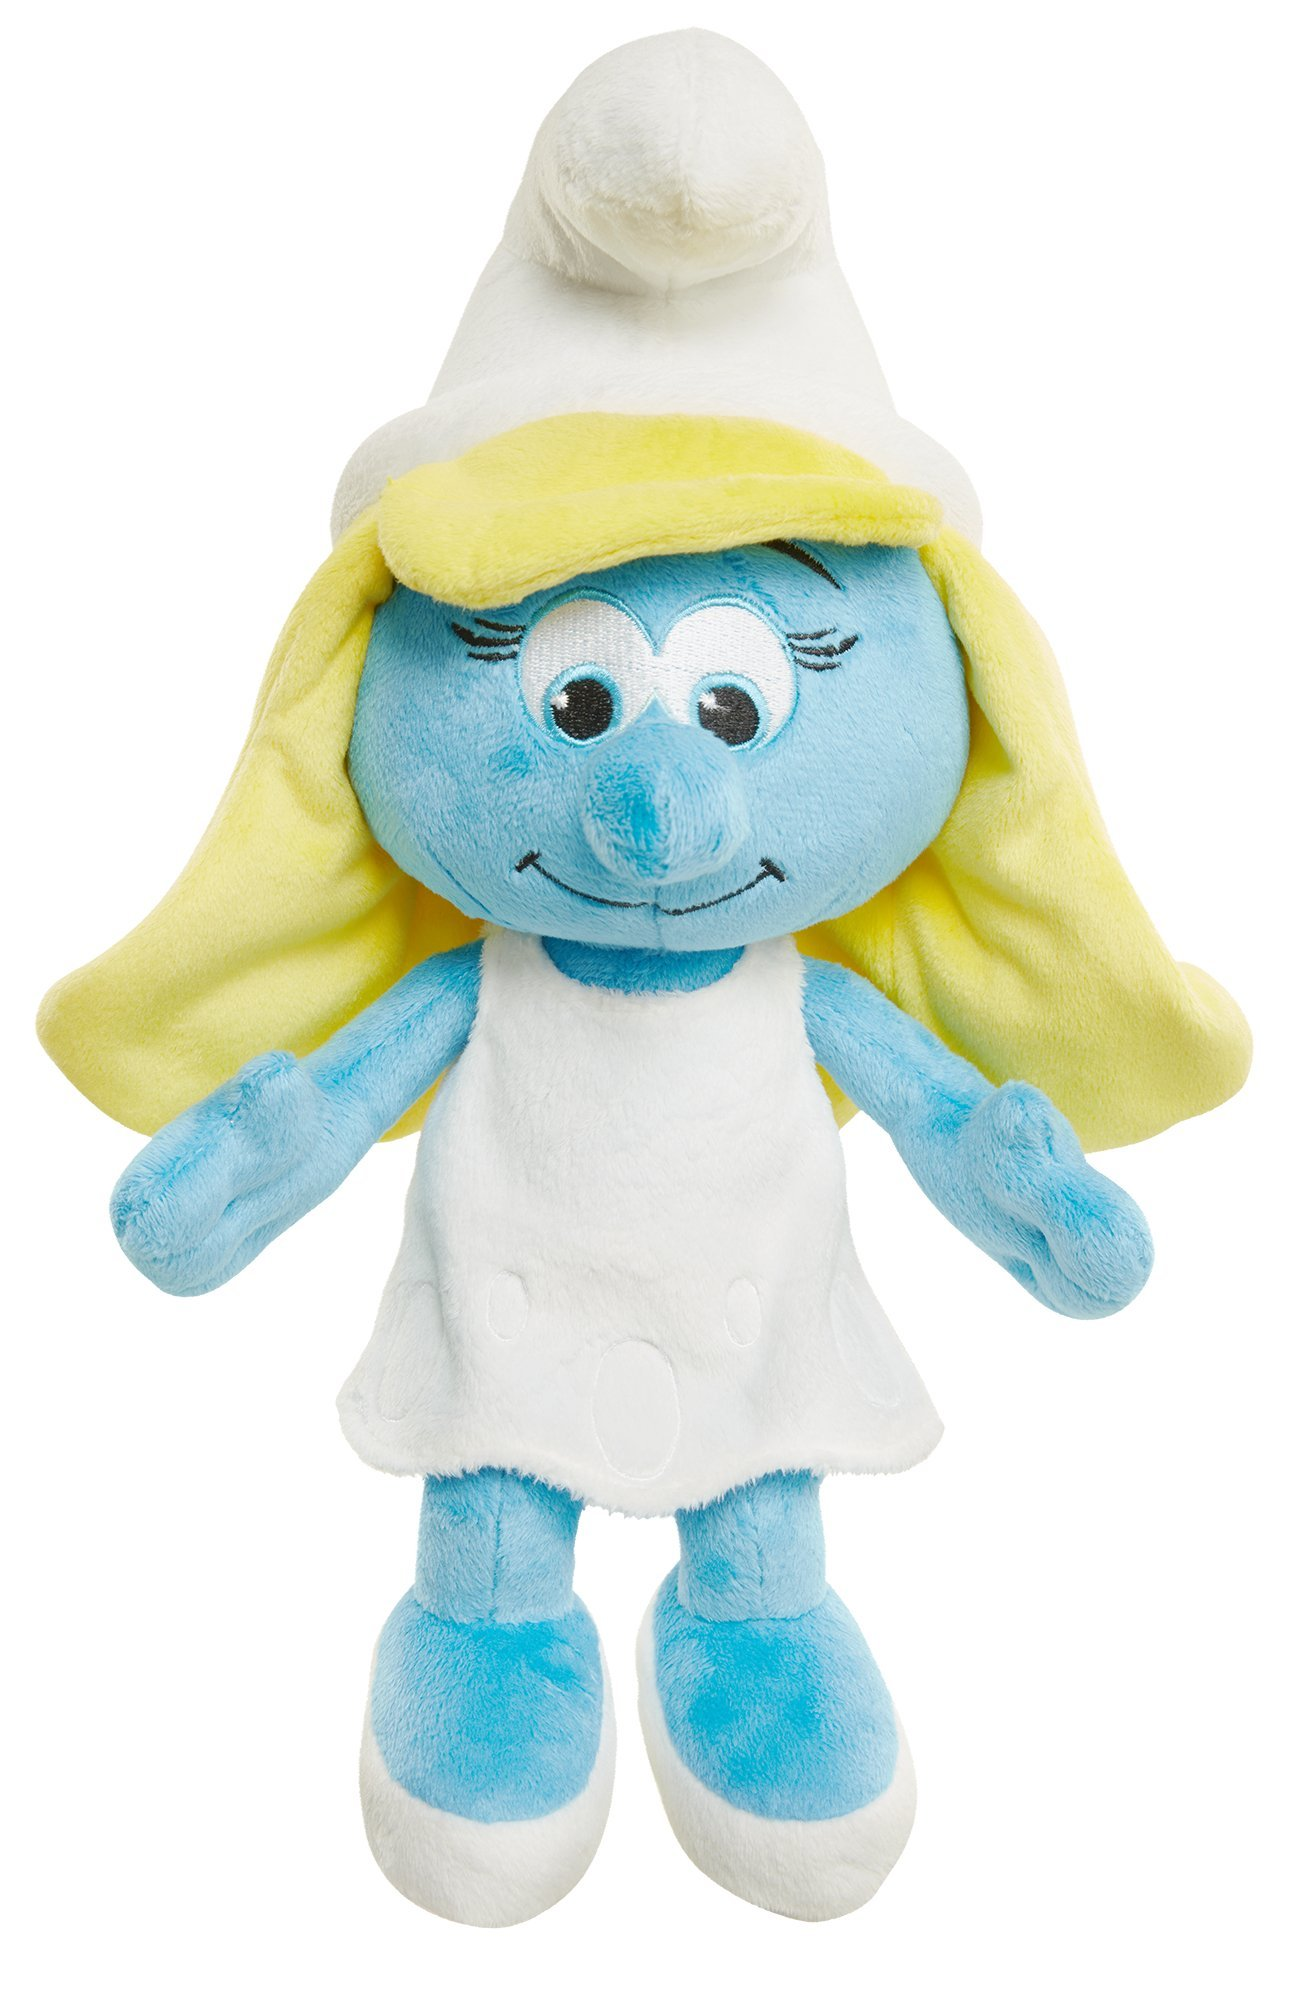 Smurfs The Lost Village Smurfette Talking Feature Plush by The Smurfs